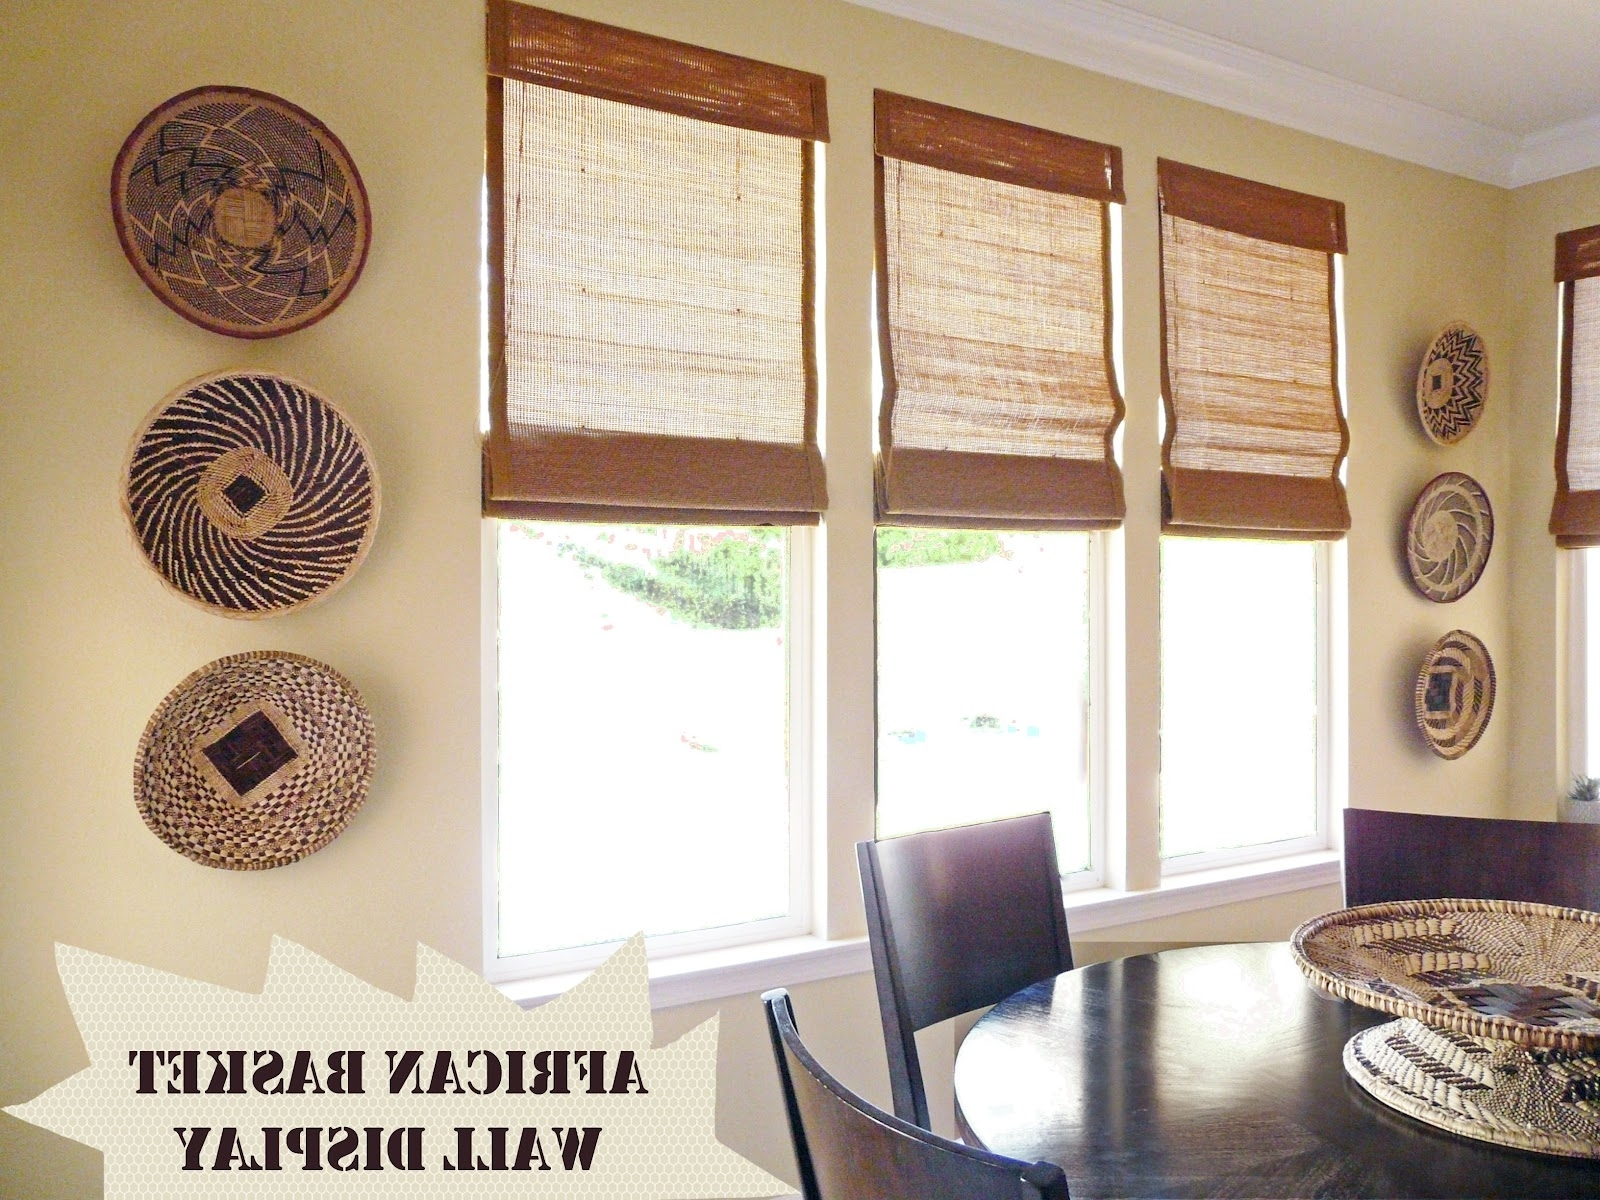 [%Home] African Basket Wall Decor Within Well Known Woven Basket Wall Art|Woven Basket Wall Art Within Most Recently Released Home] African Basket Wall Decor|2017 Woven Basket Wall Art Within Home] African Basket Wall Decor|Popular Home] African Basket Wall Decor Regarding Woven Basket Wall Art%] (View 9 of 15)